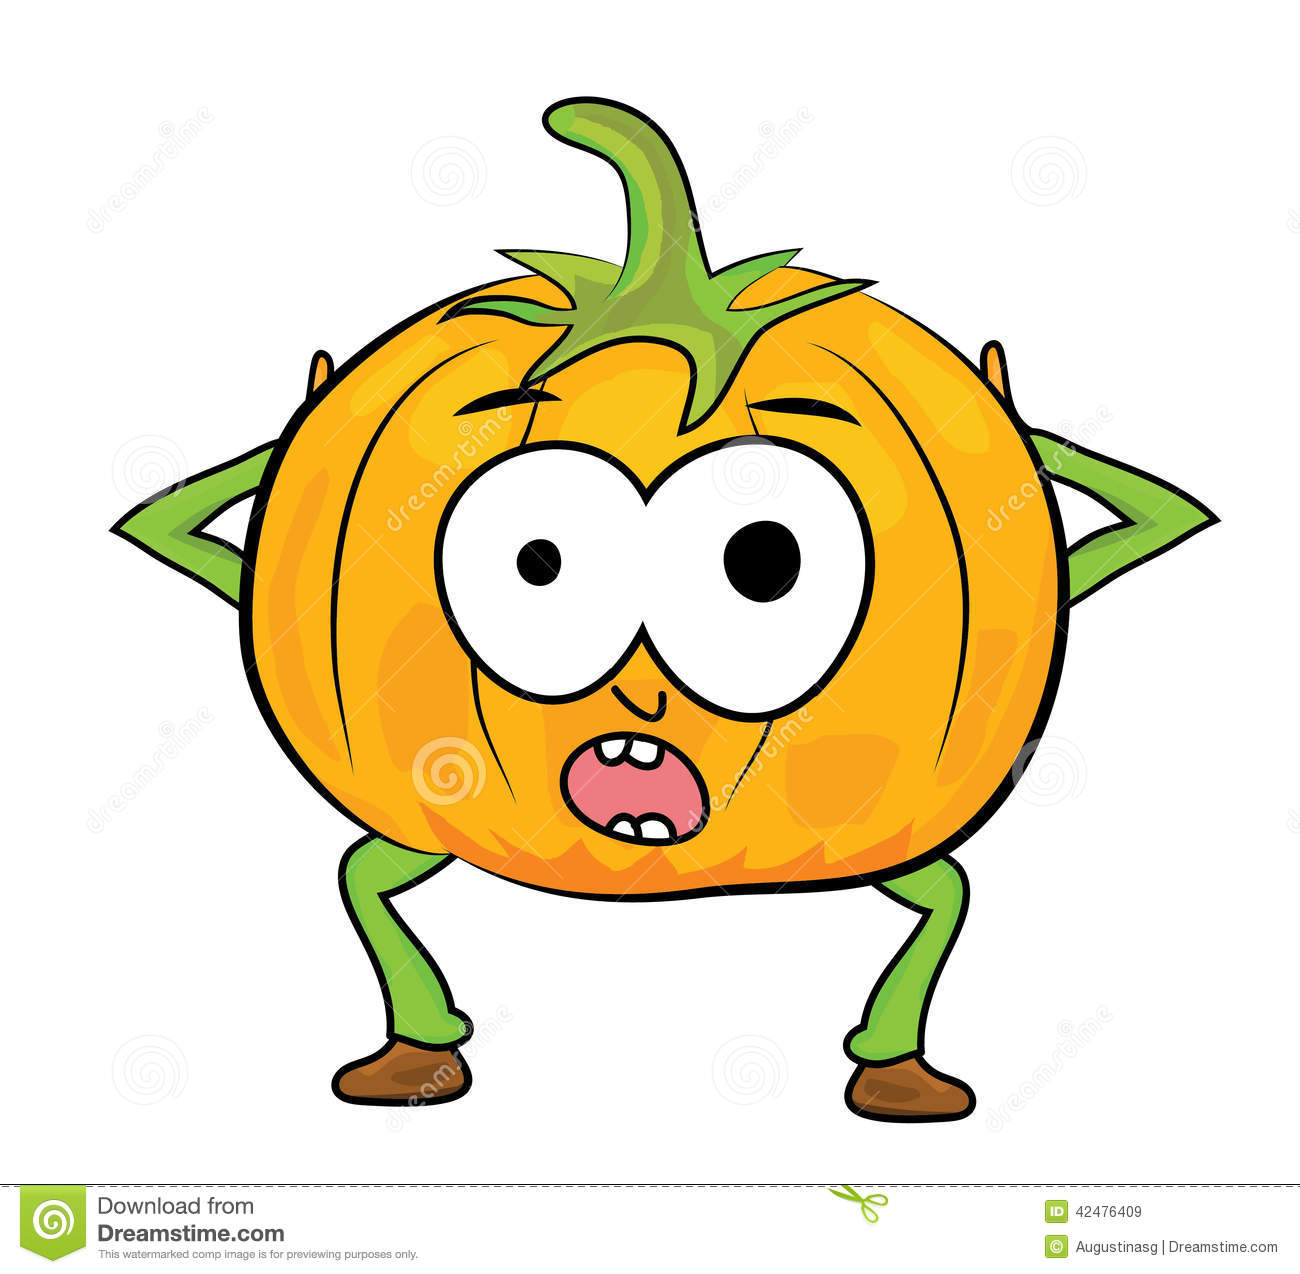 Cartoon Pumpkin Character Stock Illustration - Image: 42476409